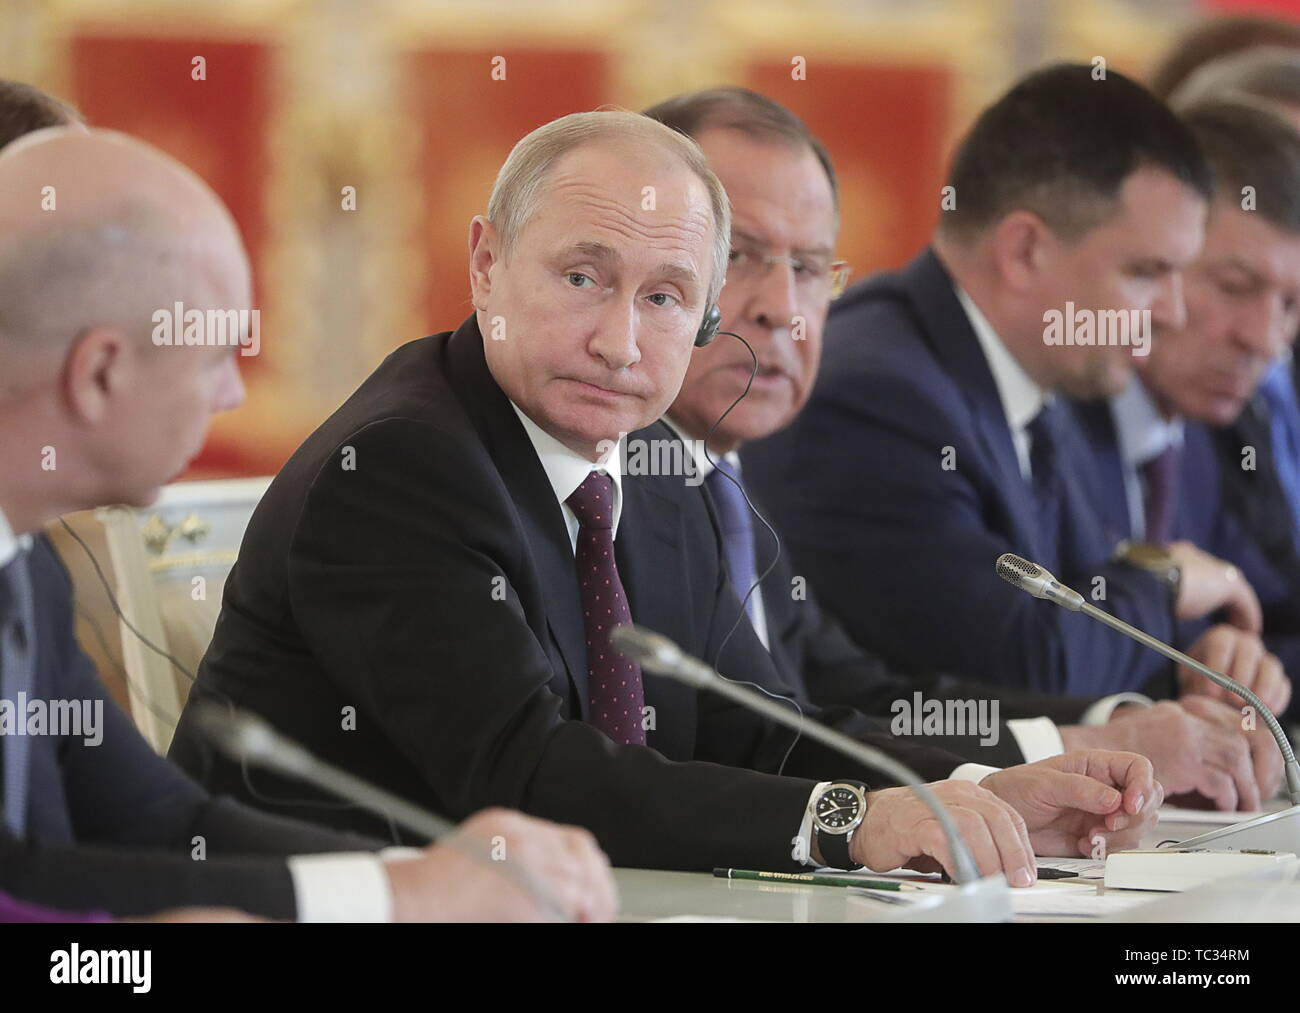 Moscow, Russia. 05th June, 2019. MOSCOW, RUSSIA - JUNE 5, 2019: Russia's President Vladimir Putin, Russia's Foreign Minister Sergei Lavrov (L-R cenre) during Russian-Chinese talks at the Moscow Kremlin. Mikhail Metzel/TASS Credit: ITAR-TASS News Agency/Alamy Live News - Stock Image